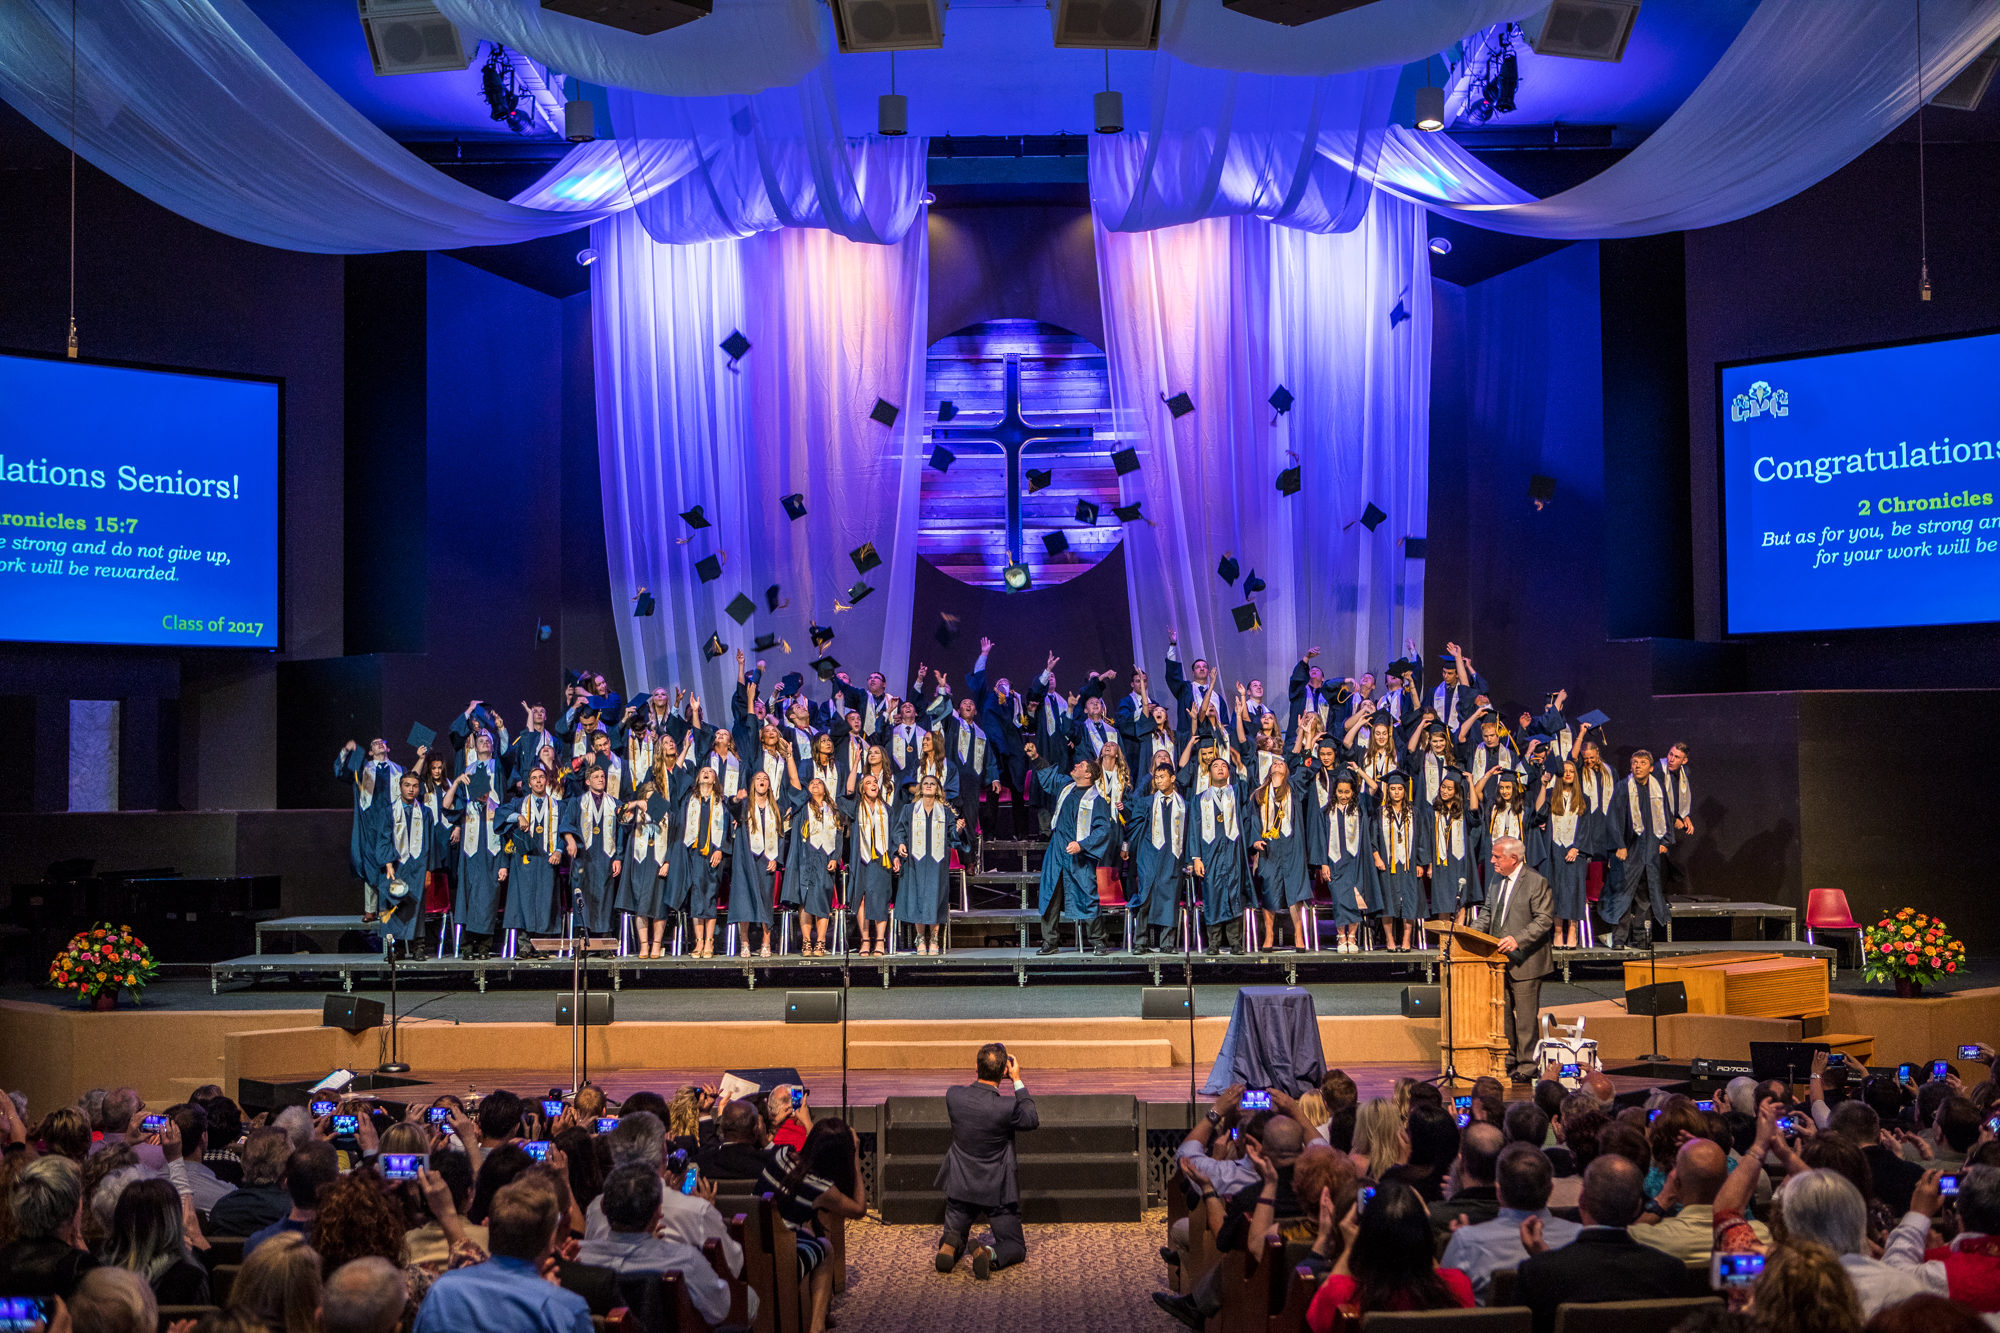 Cpcs bothell hs graduation%20%2824%20of%2024%29